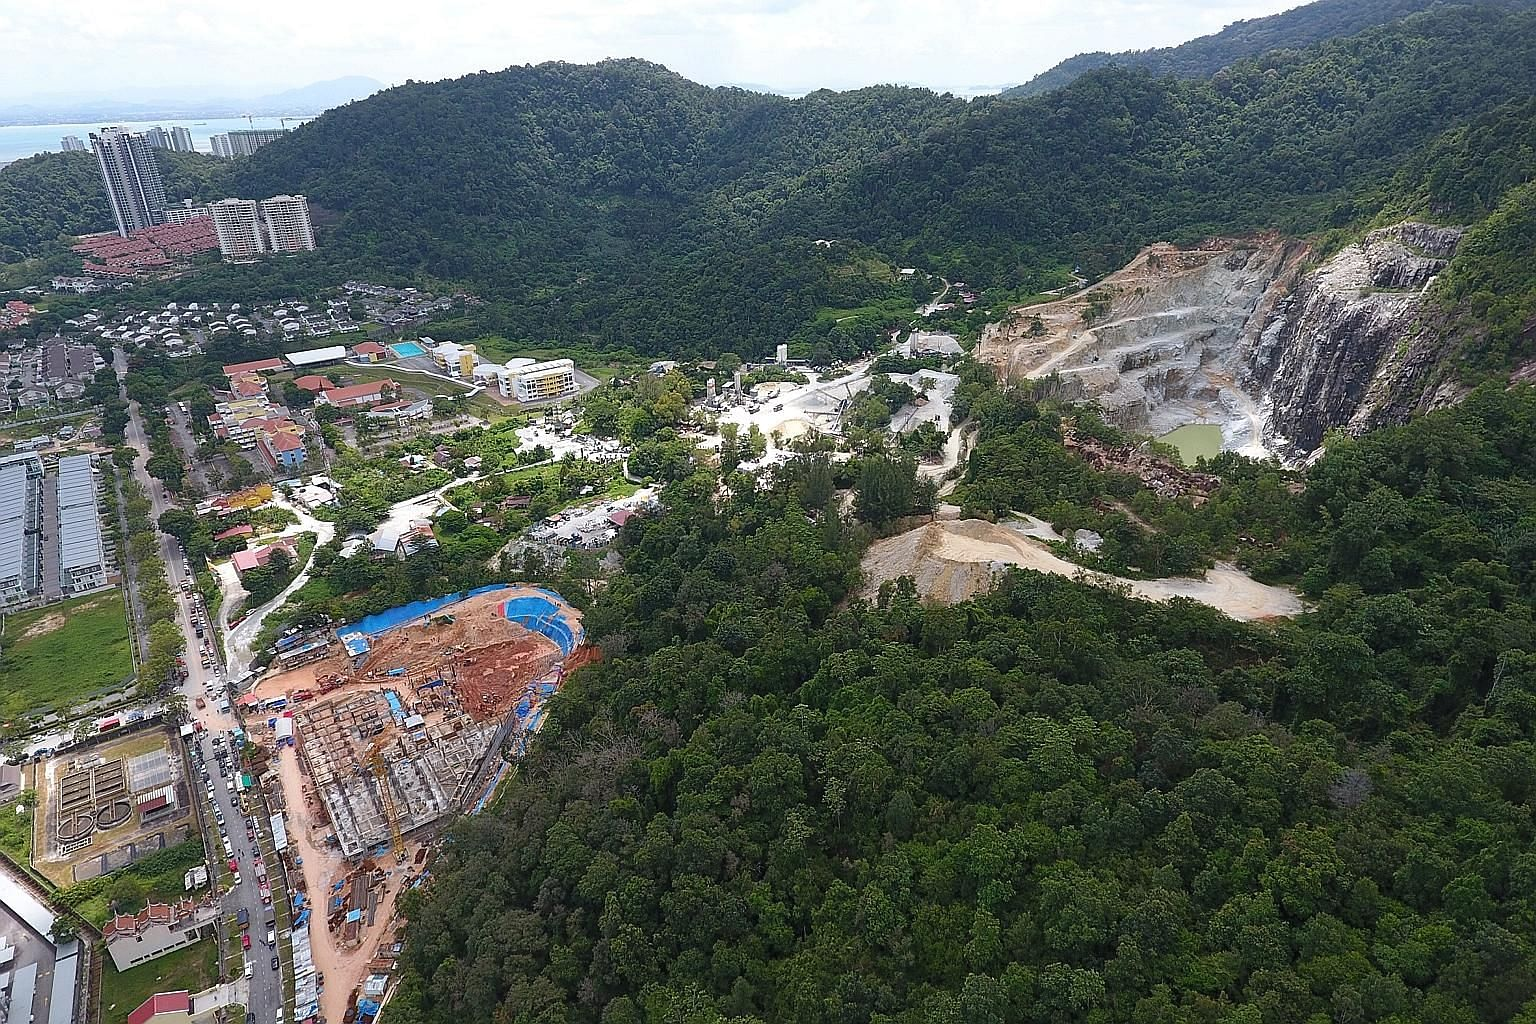 The construction site in Penang where the landslide occurred (left), with a quarry on the right. Malaysia's environment ministry says it had earlier rejected an application by the developer to build on the site because it was next to an active granit